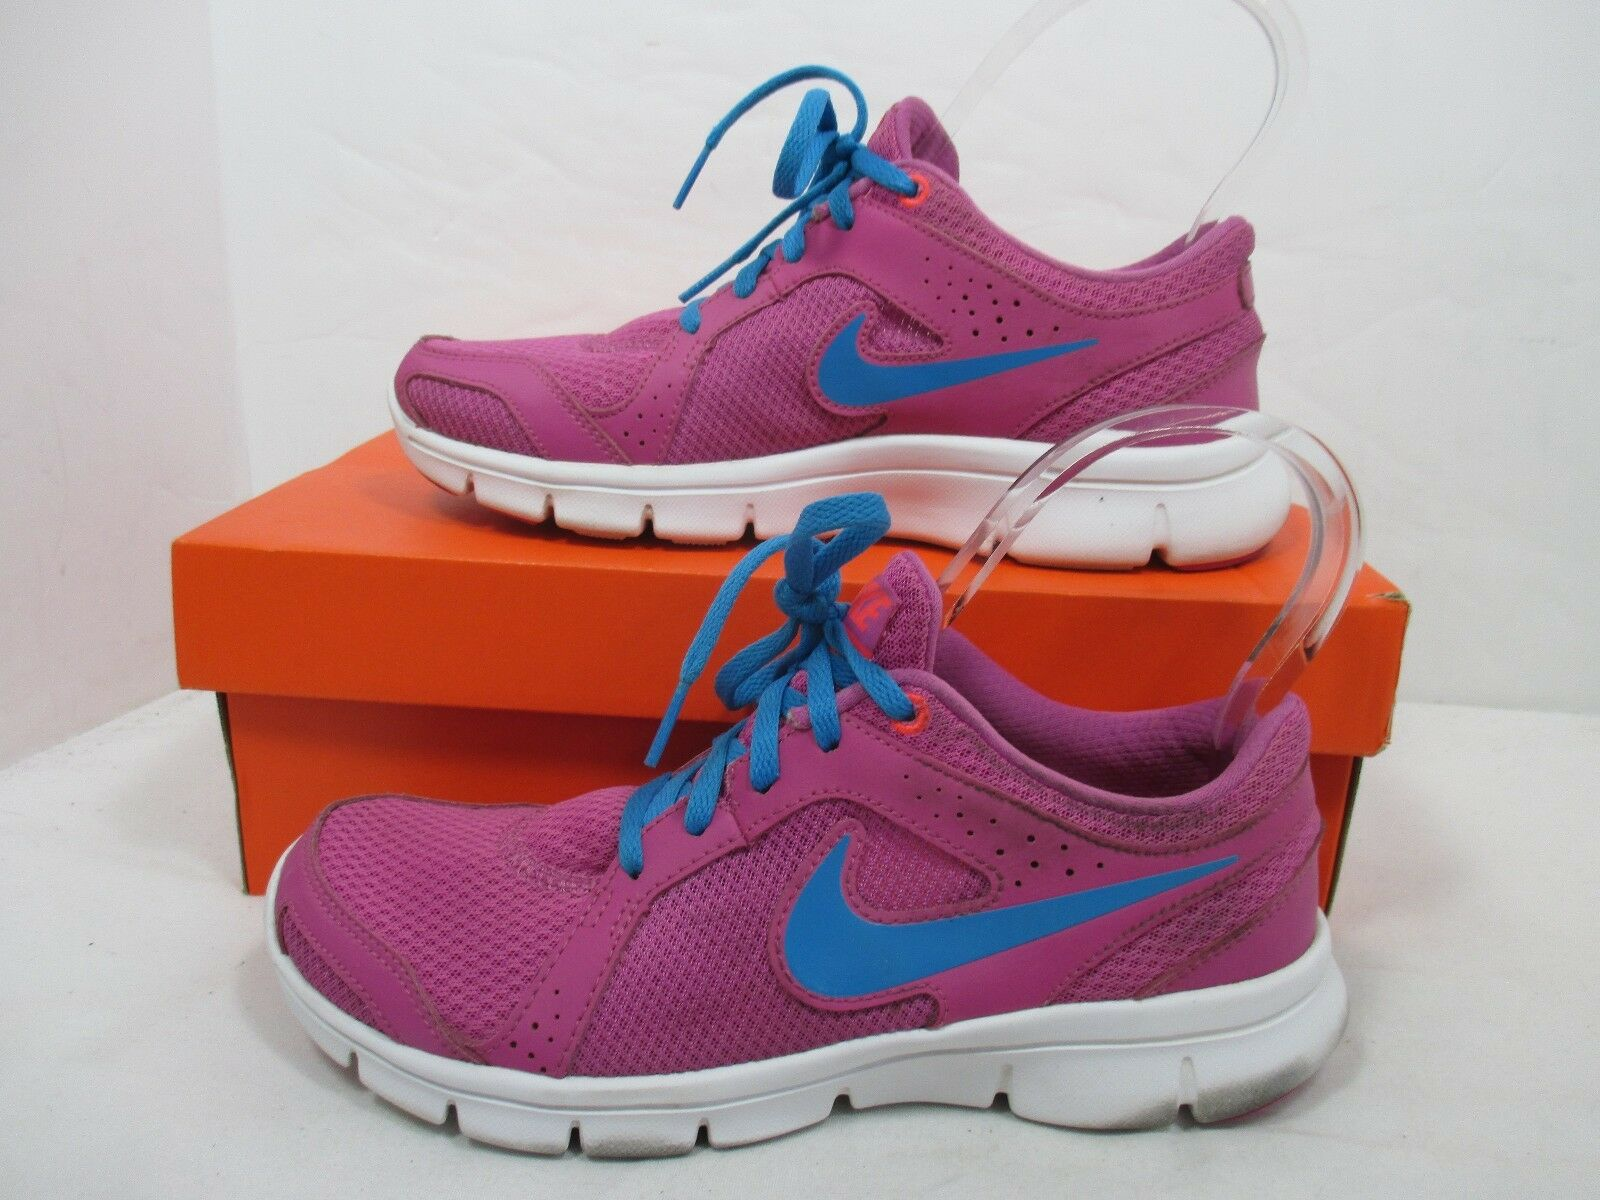 Nike REVOLUTION Purple/Pink Lace Up Athletic Running Shoes Sz.8M W/Original Box Special limited time